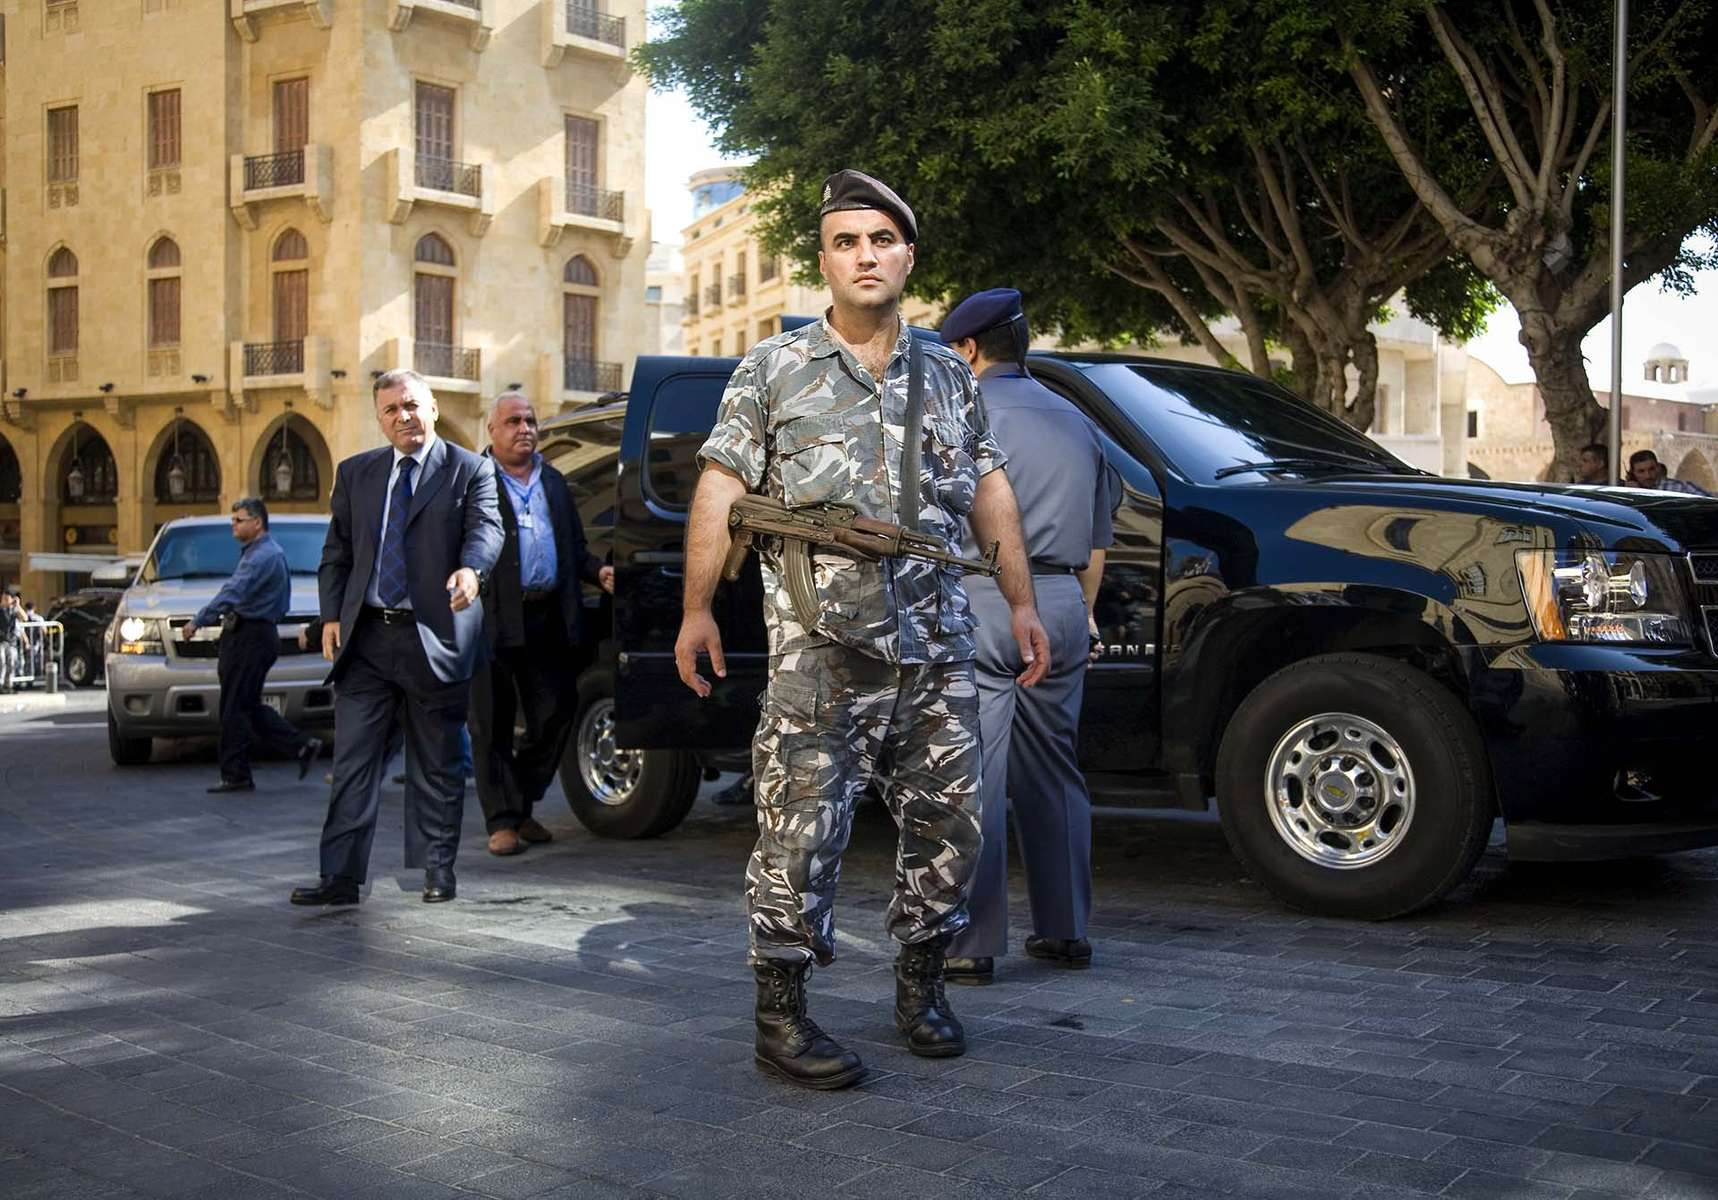 One of the members of Lebanese Parliament arrives at the Parliament in Beirut under heavy security in Tuesday, September 25, 2007. After a brief meeting, they announced the postponement  of a session to elect a new president until next month after the legislature failed to have enough lawmakers to elect the President because of a Hezbollah-led opposition boycott. Fears of another attack against anti-Syrian lawmakers were high after the killing of Antoine Ghanem last week, which fueled the accusation against Syria being behind the political killings which left 5 MPs dead and Rafiq Hariri, Prime Minister.